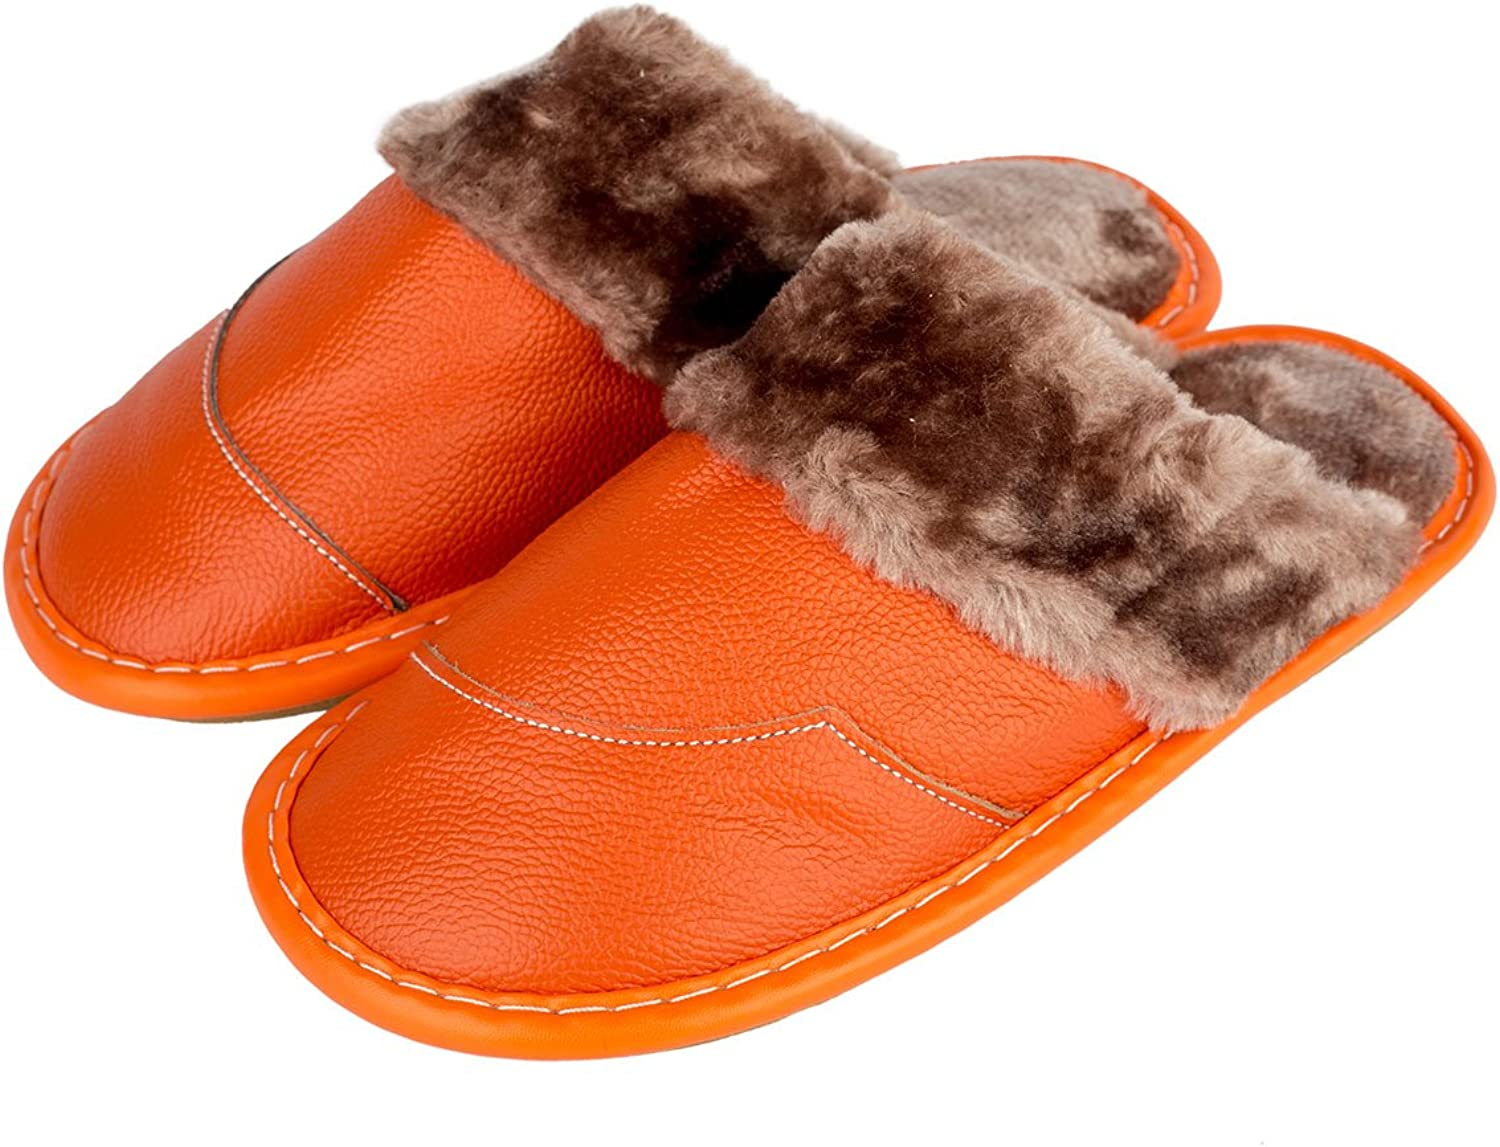 Haisum Women's Indoor Winter Genuine Leather Splicing Faux Fur Lining Plush Mules Comfy House Slippers